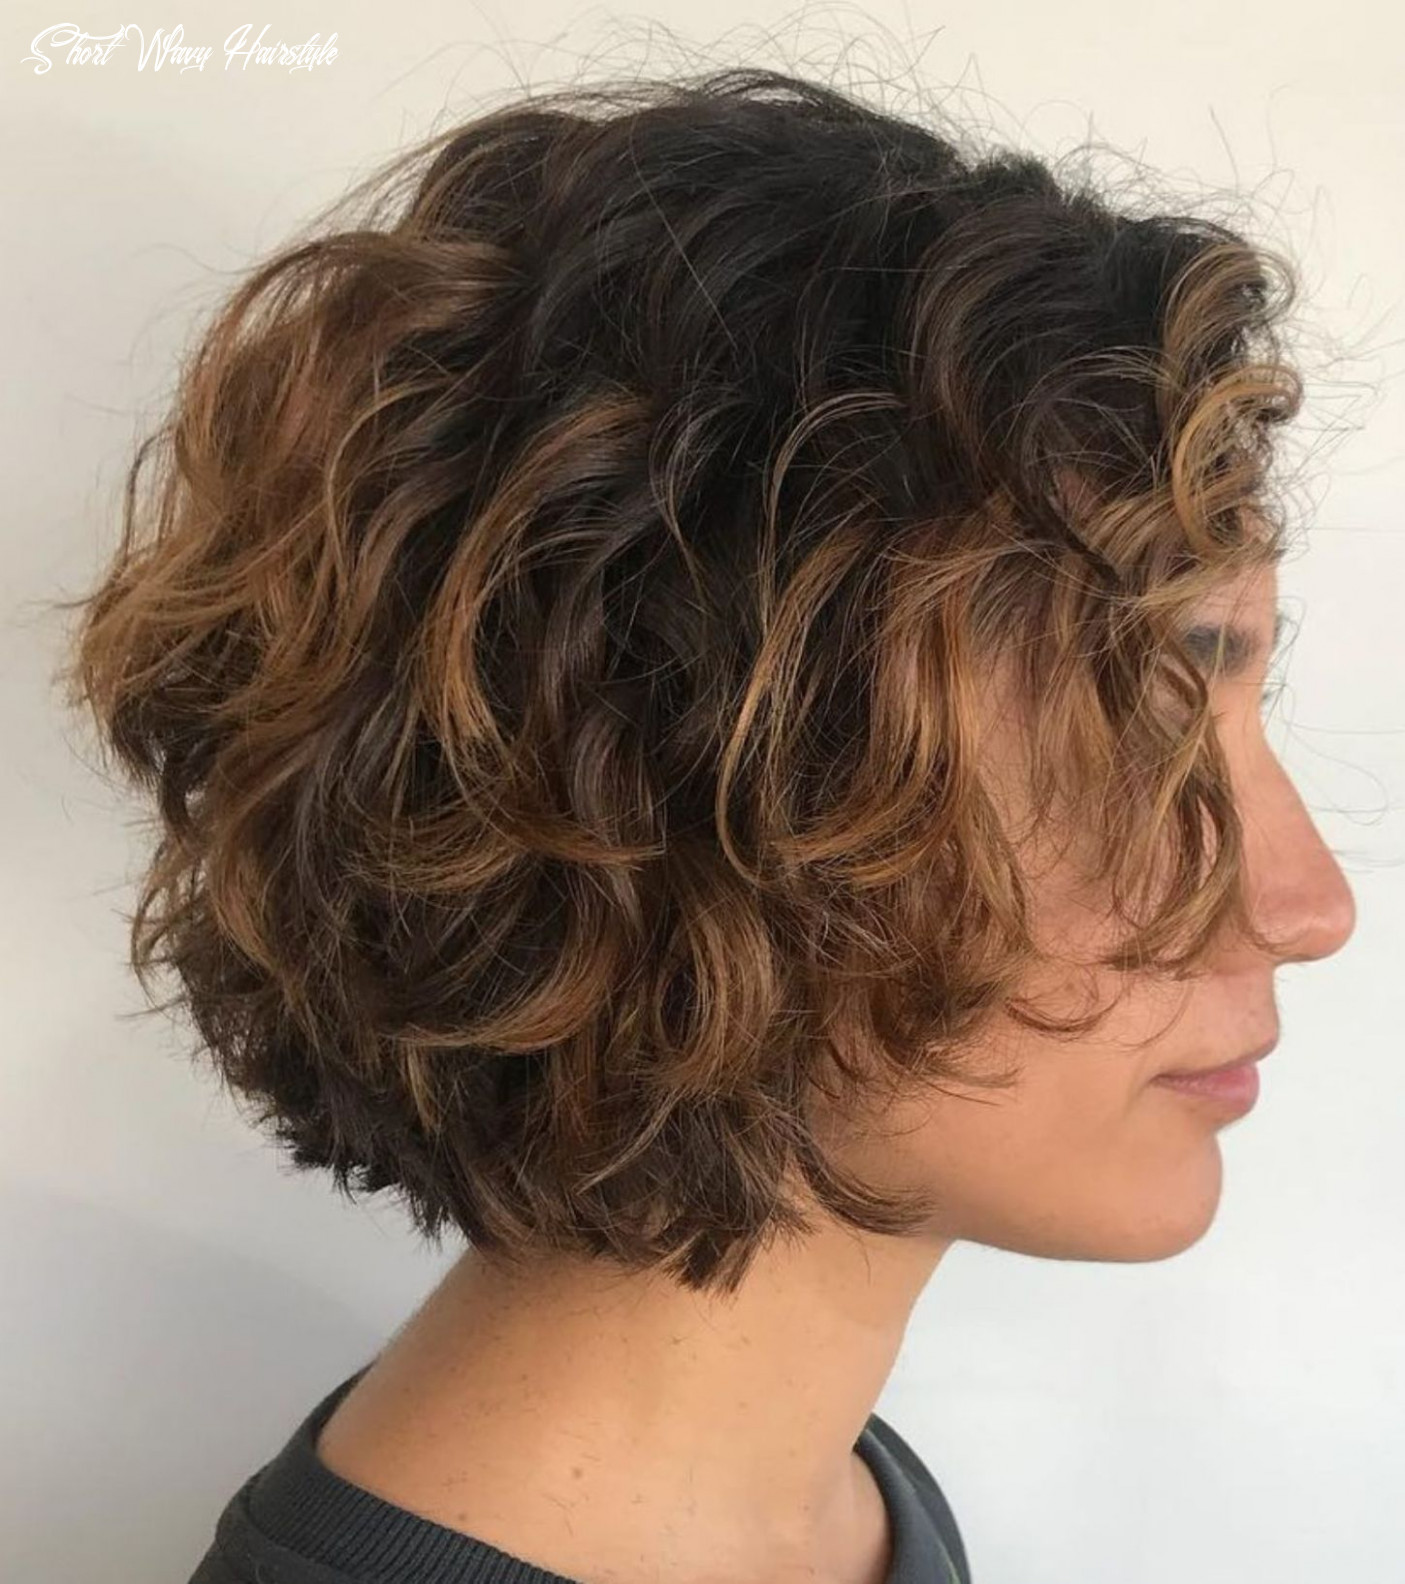 11 most delightful short wavy hairstyles | short layered curly